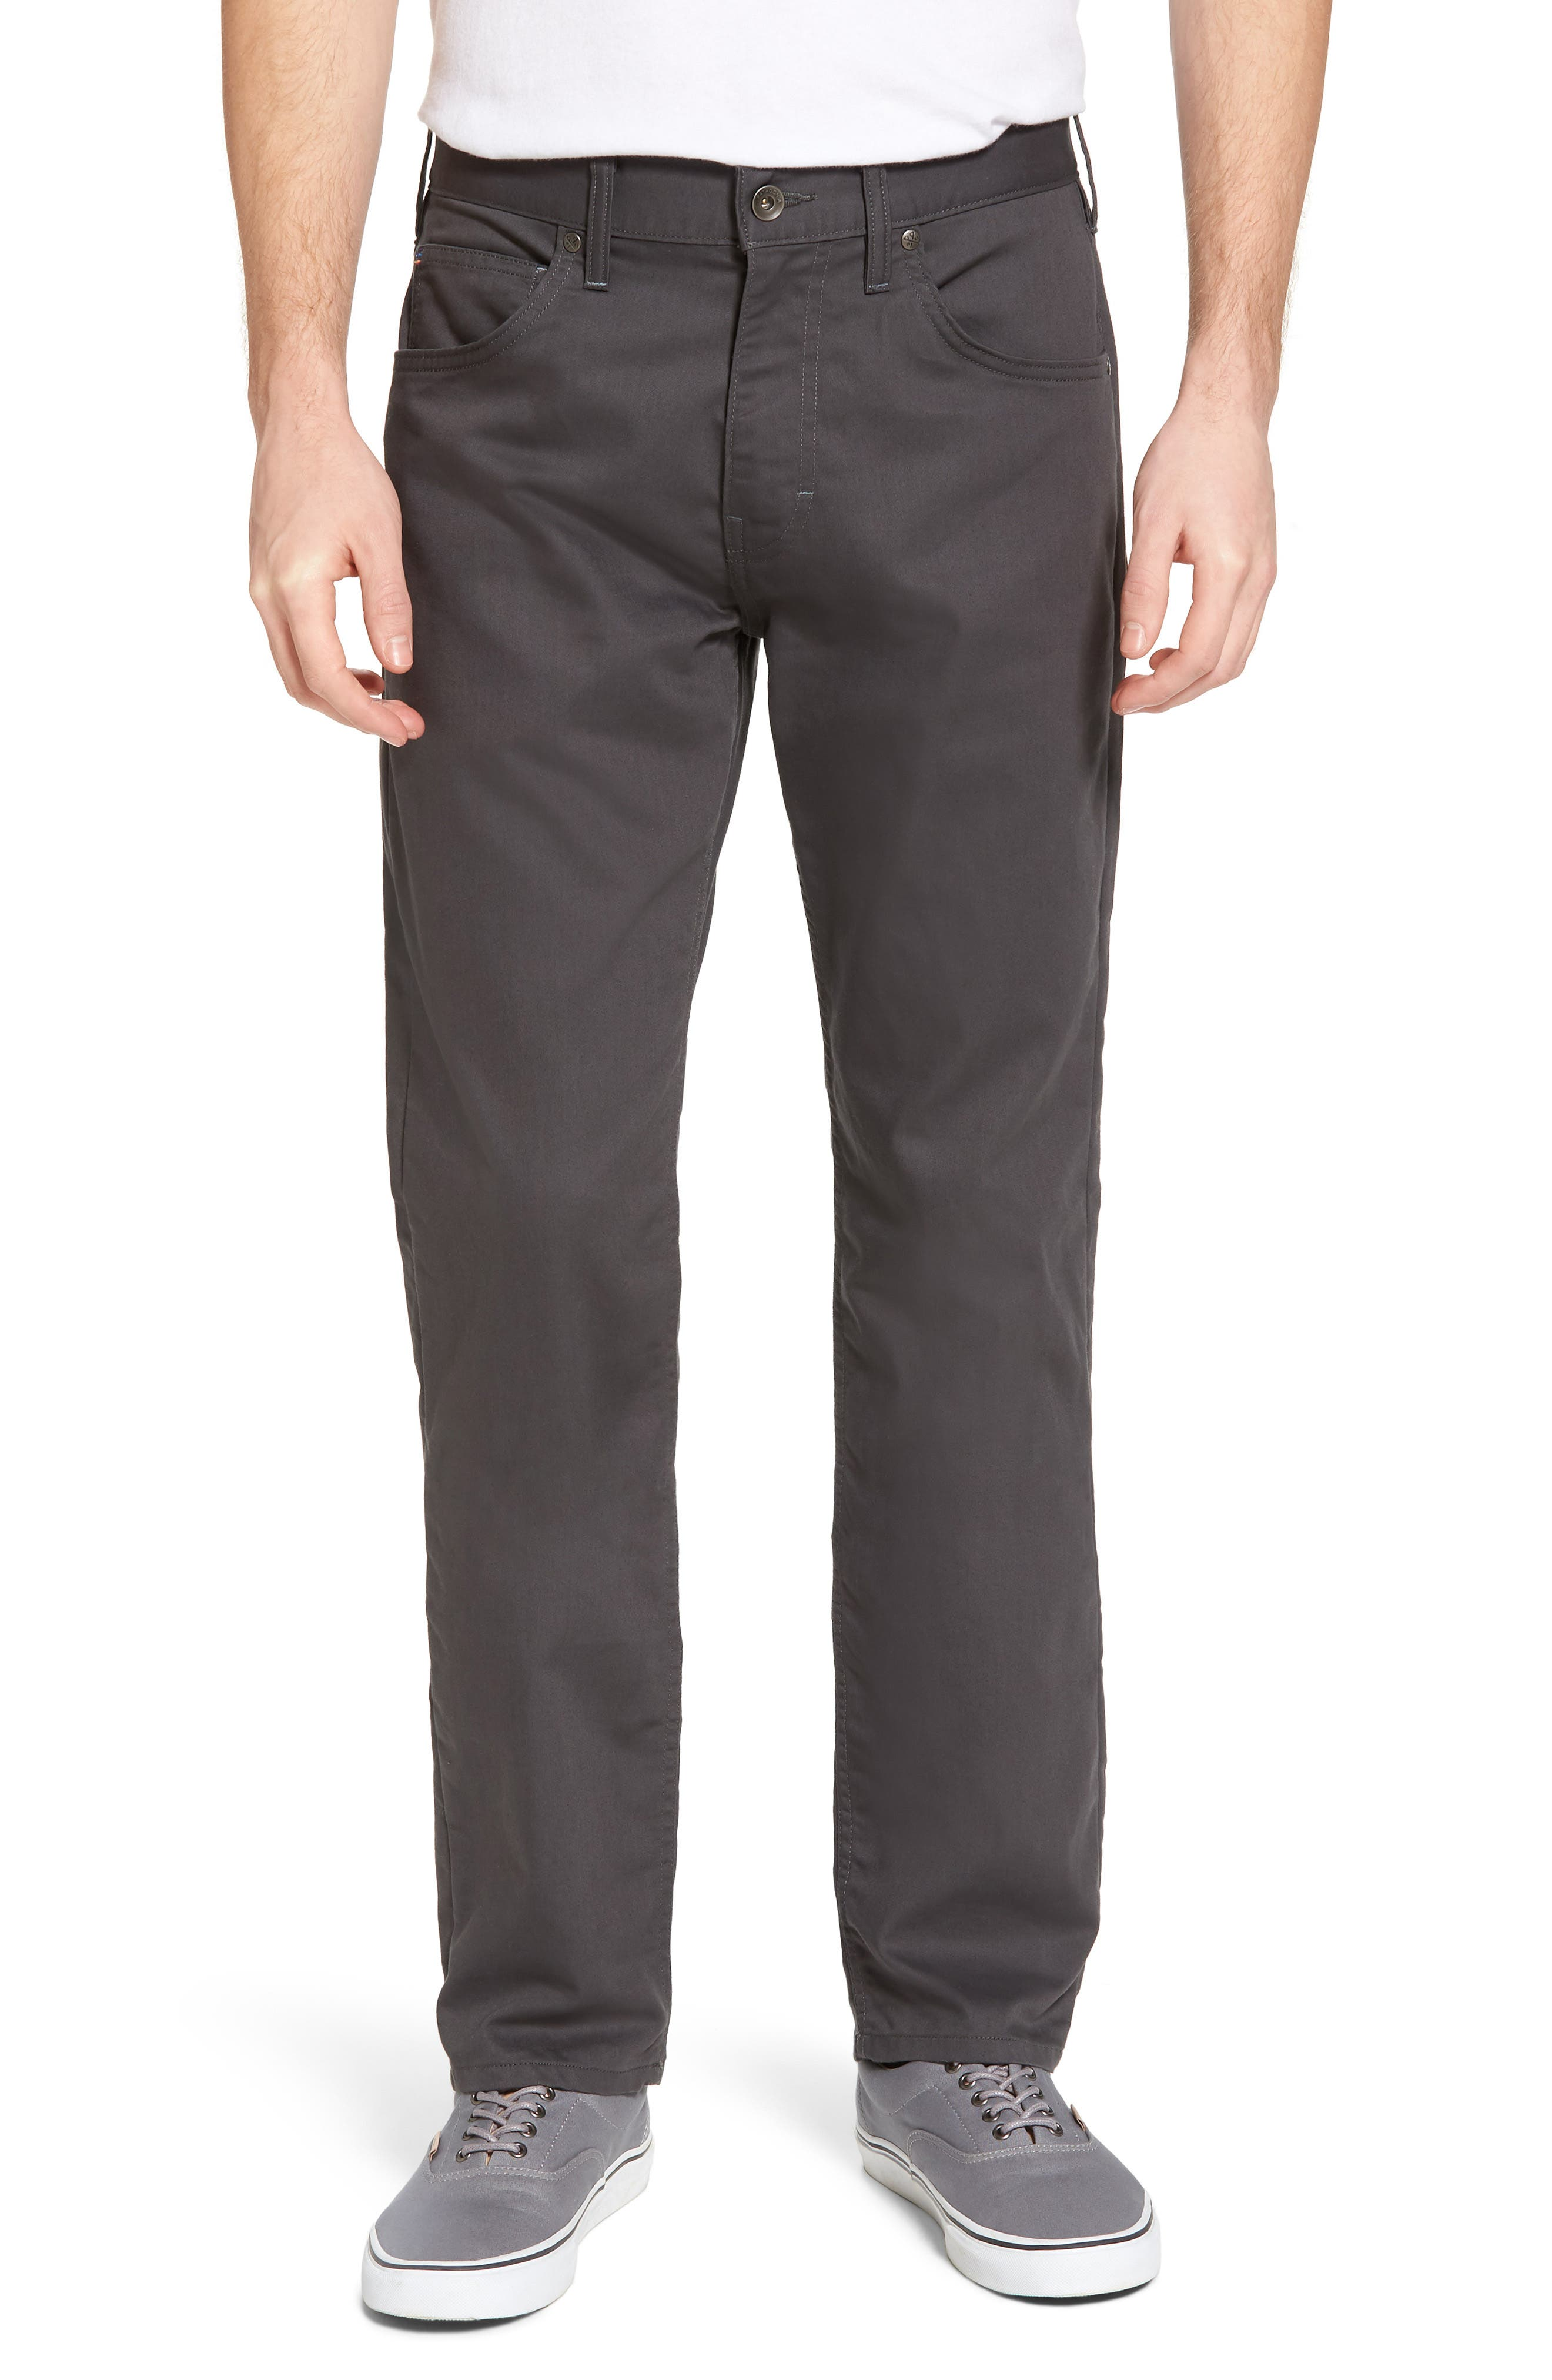 Patagonia M's Performance Twill Jeans